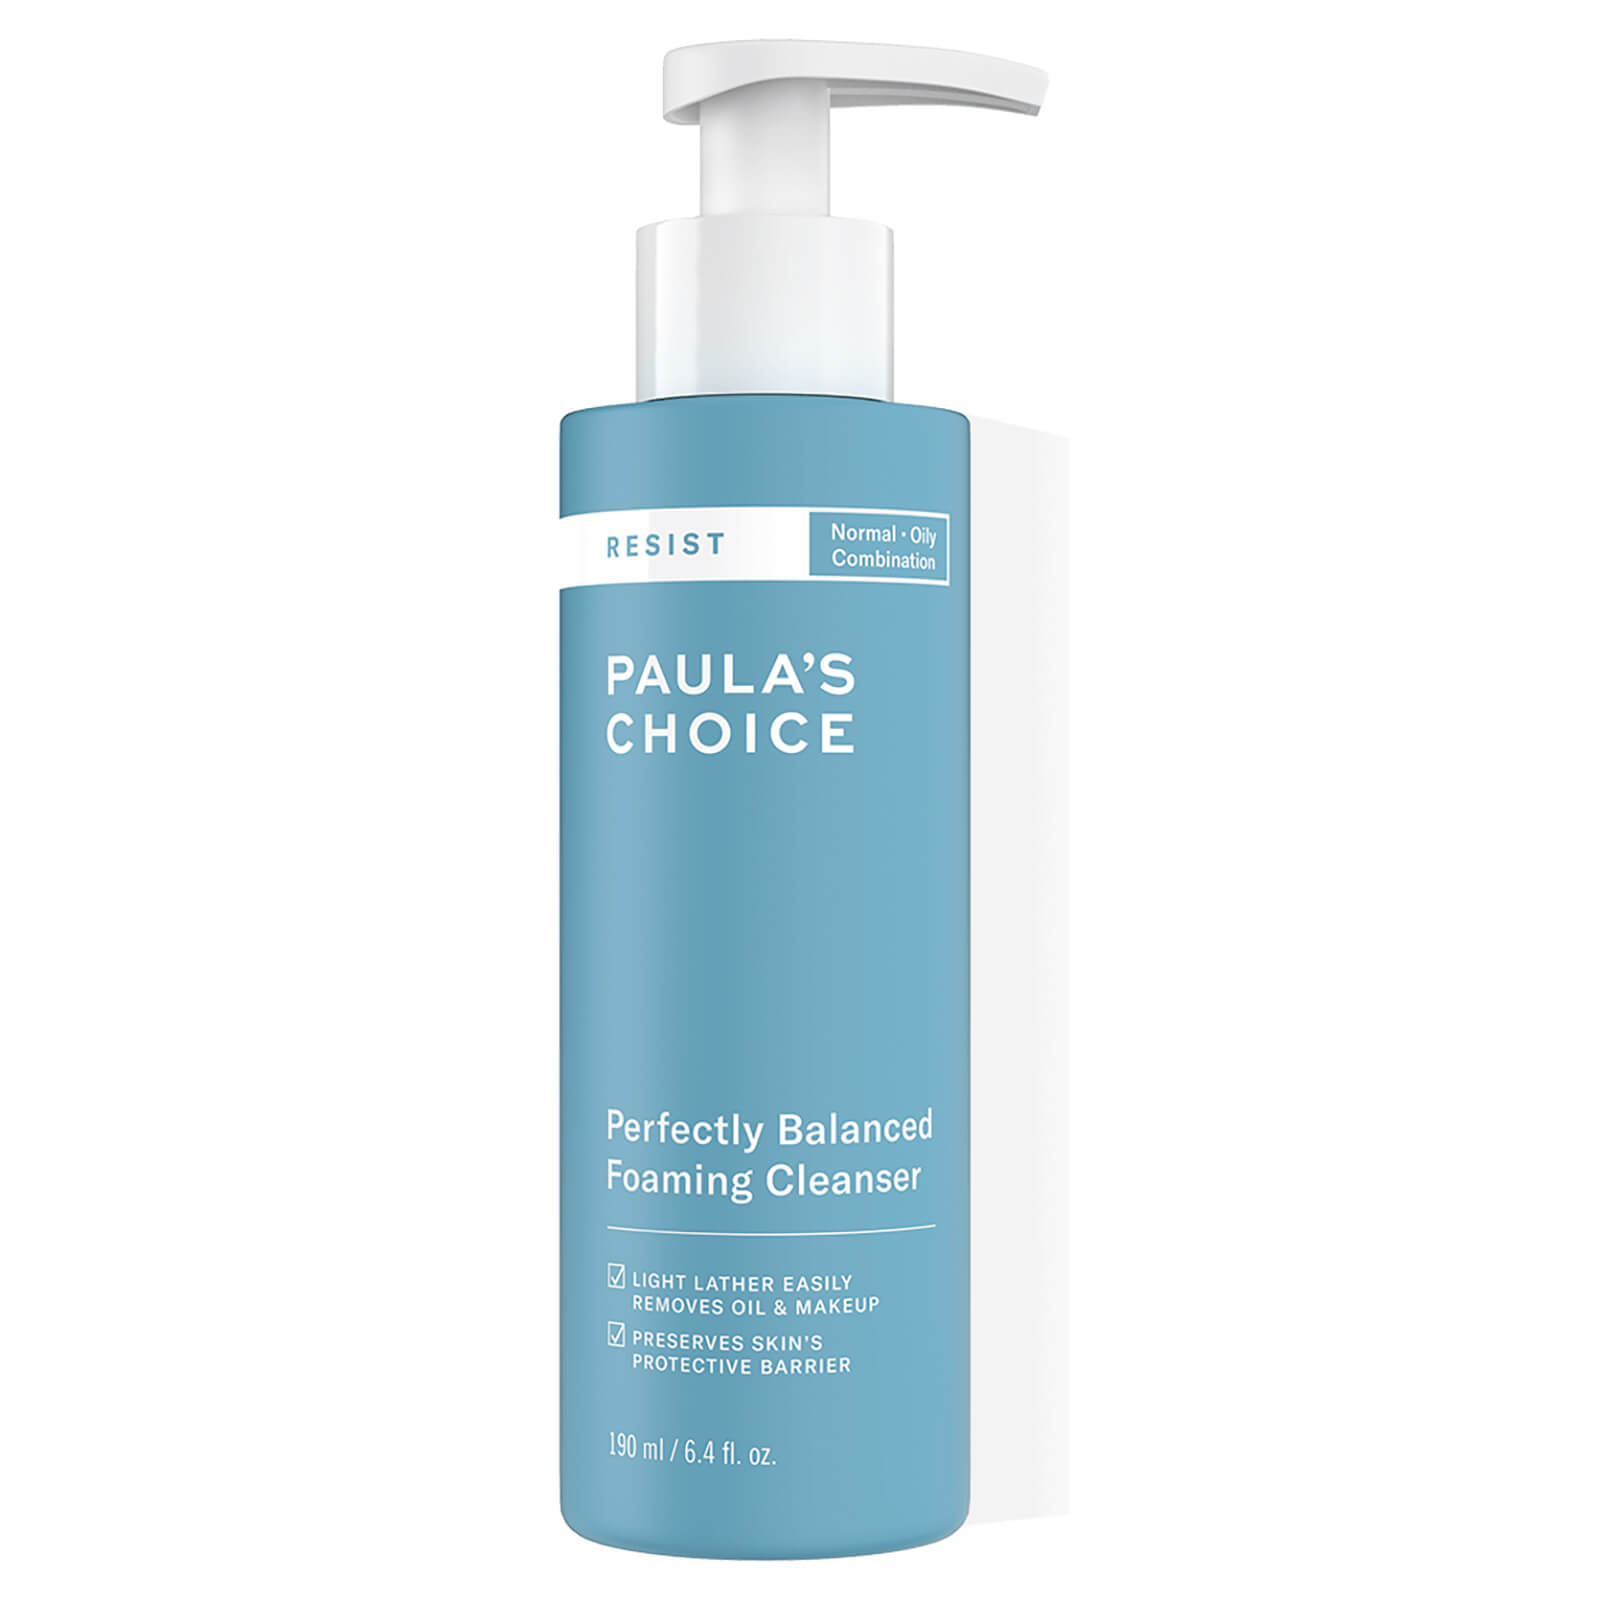 paula's choice cleanser review